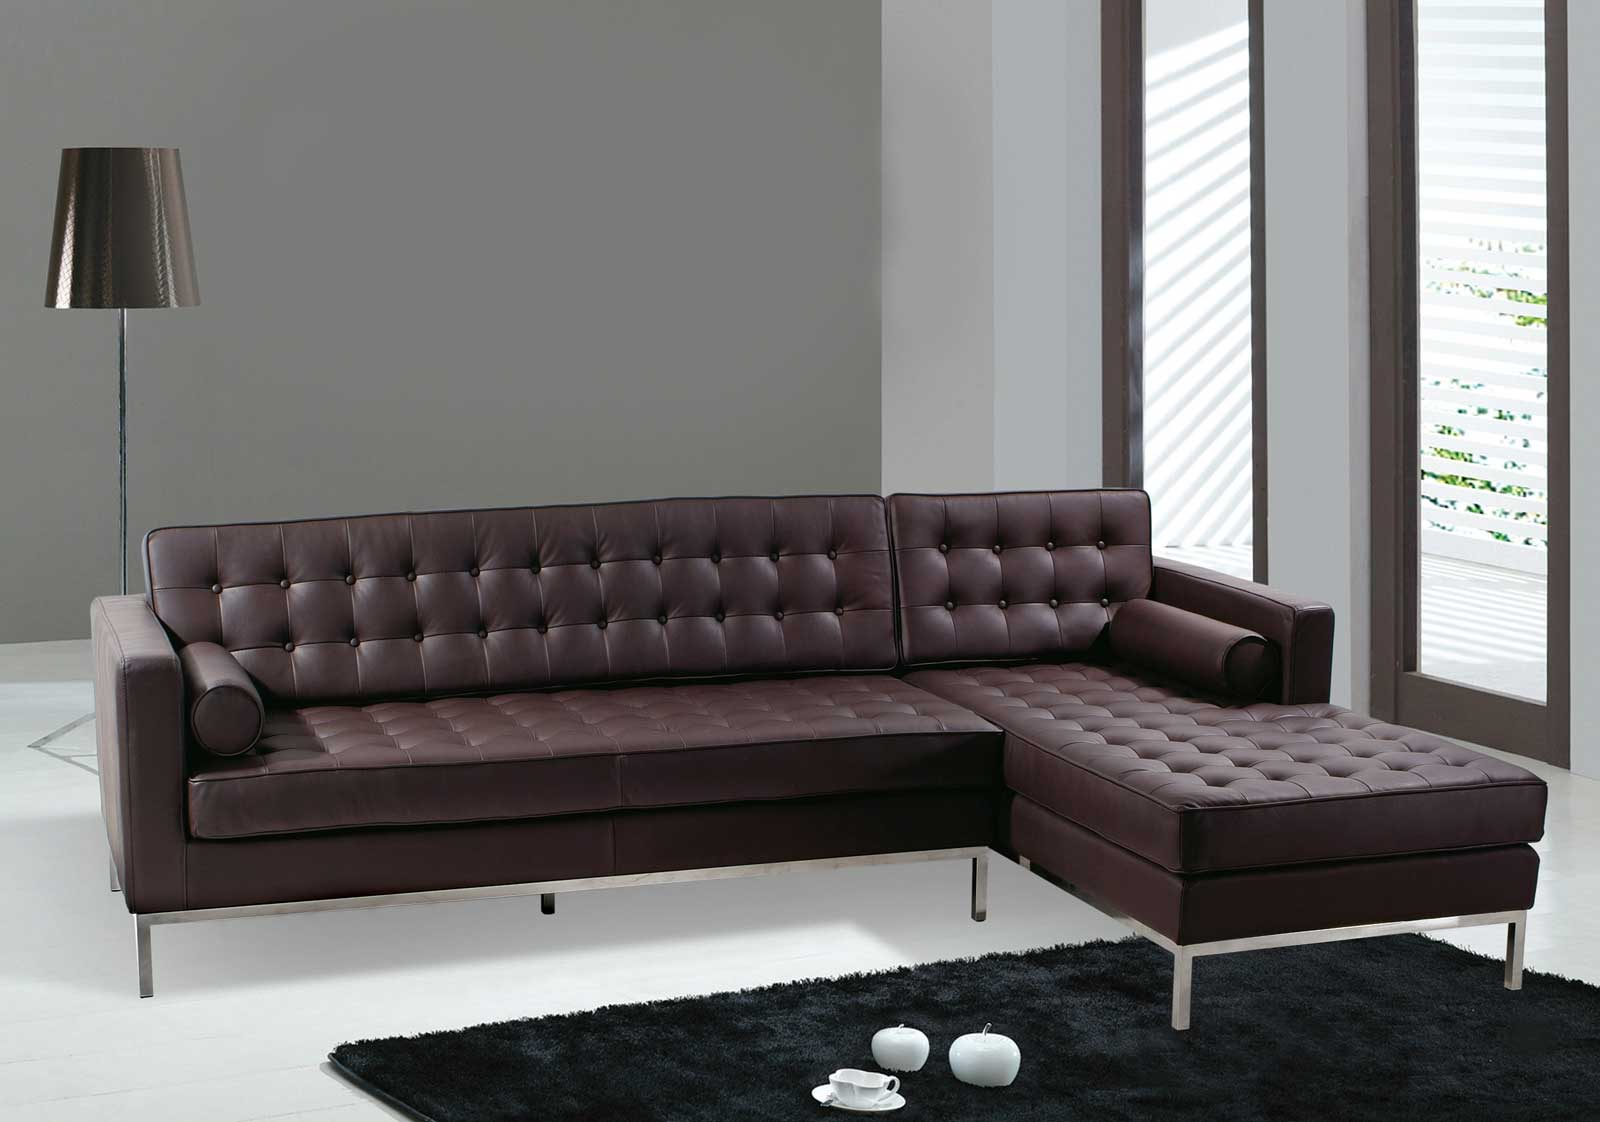 modern sectional sofas for office waiting room ForModern Sectional Sofas